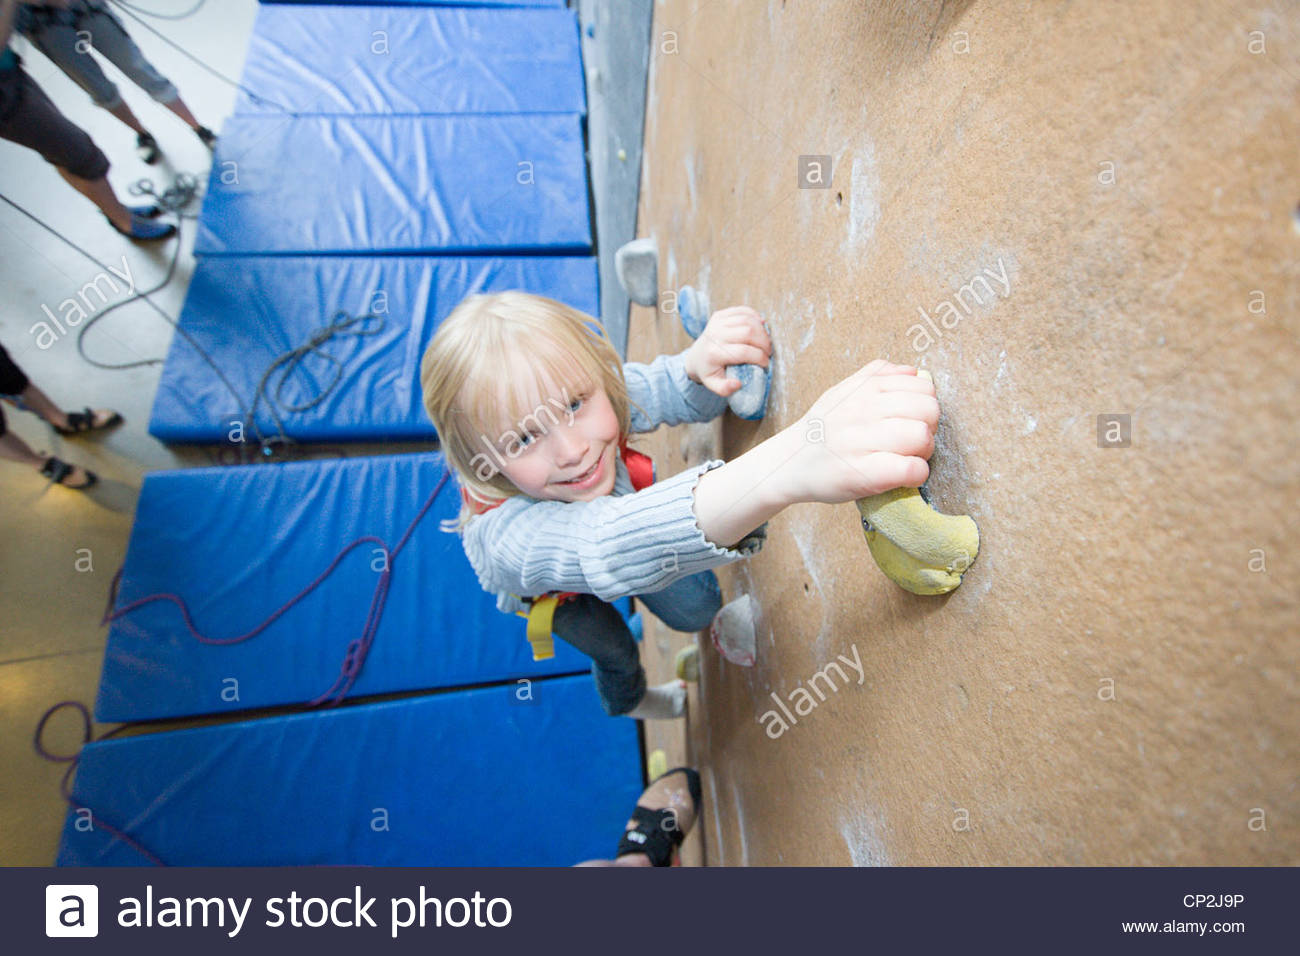 A little girl climbing in an indoor climbing wall - Stock Image